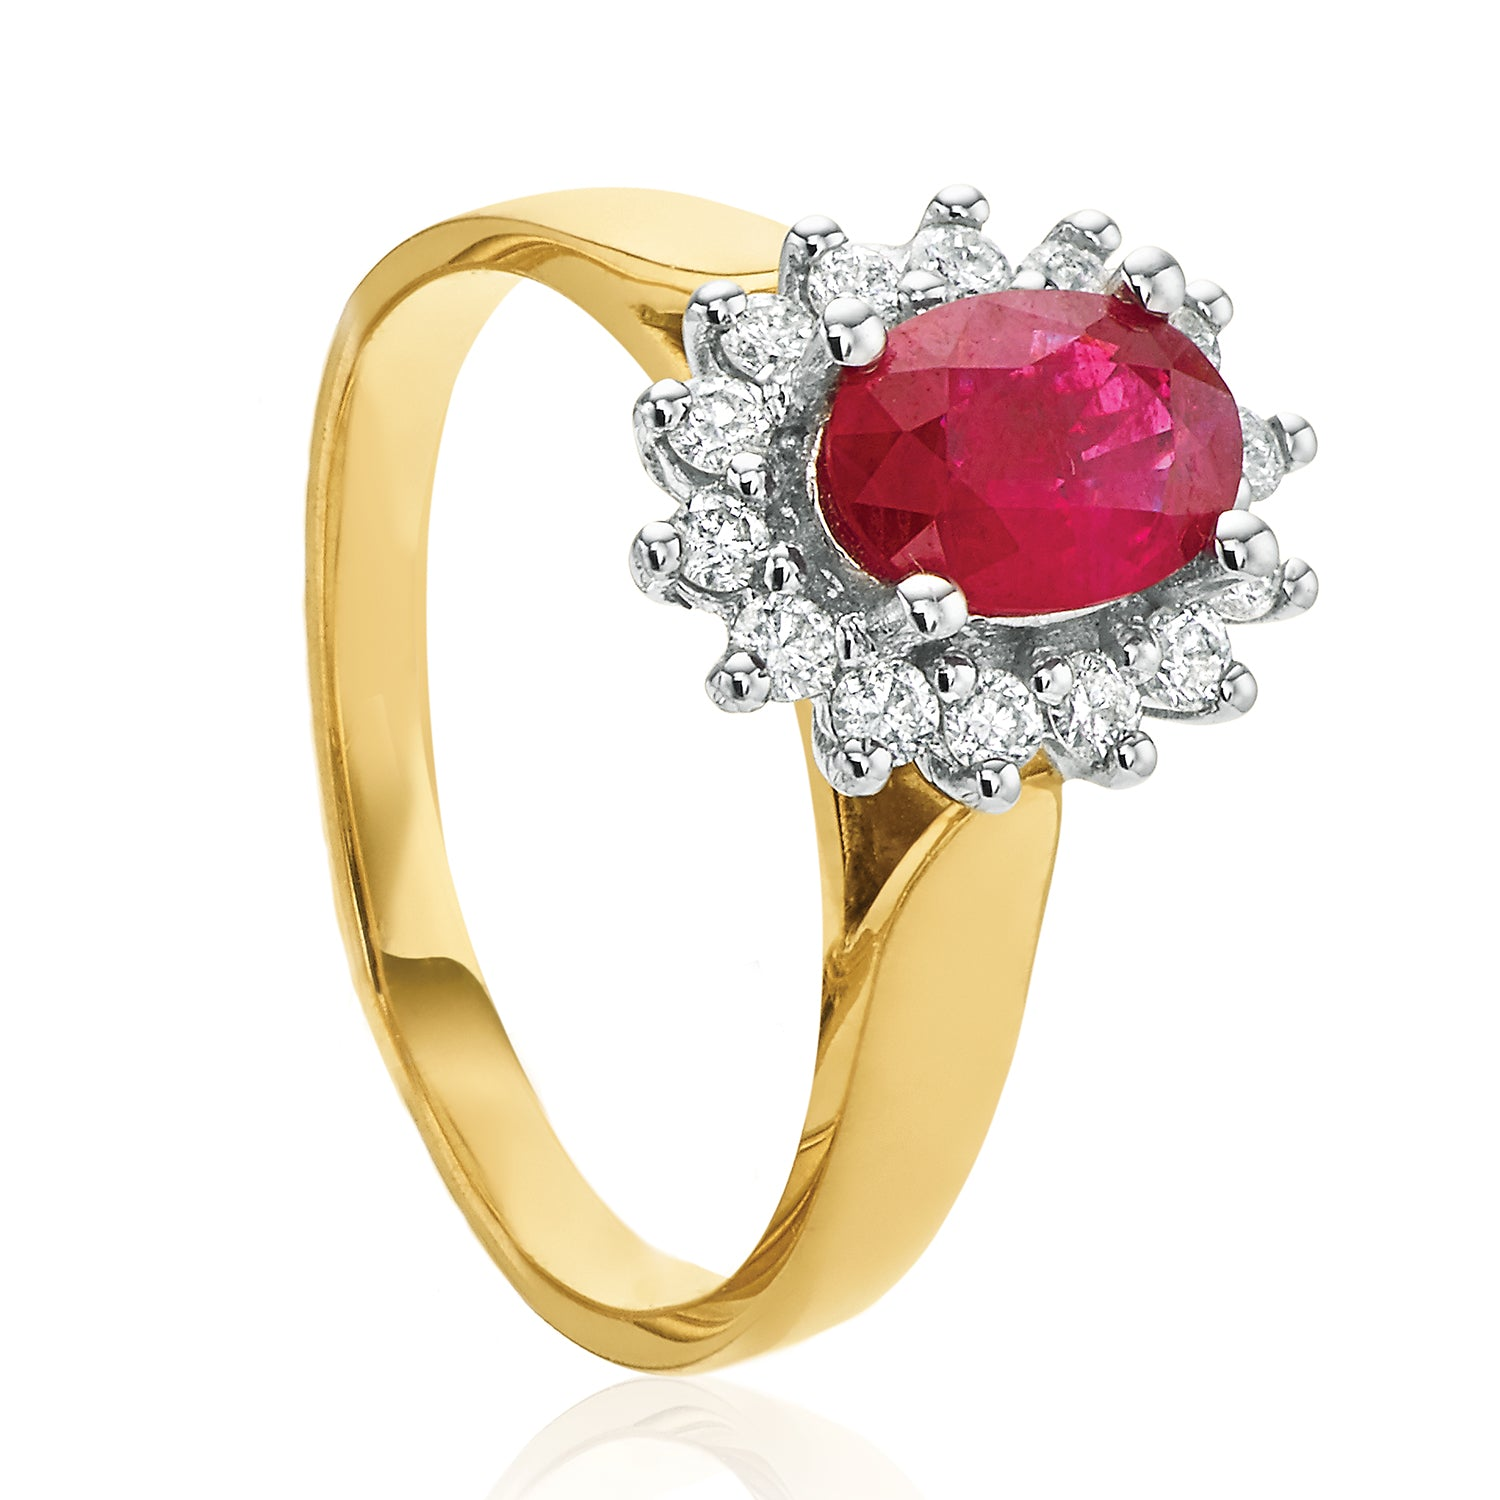 18ct Two Tone Gold Oval Cut Ruby with 1/4 CARAT tw of Diamonds